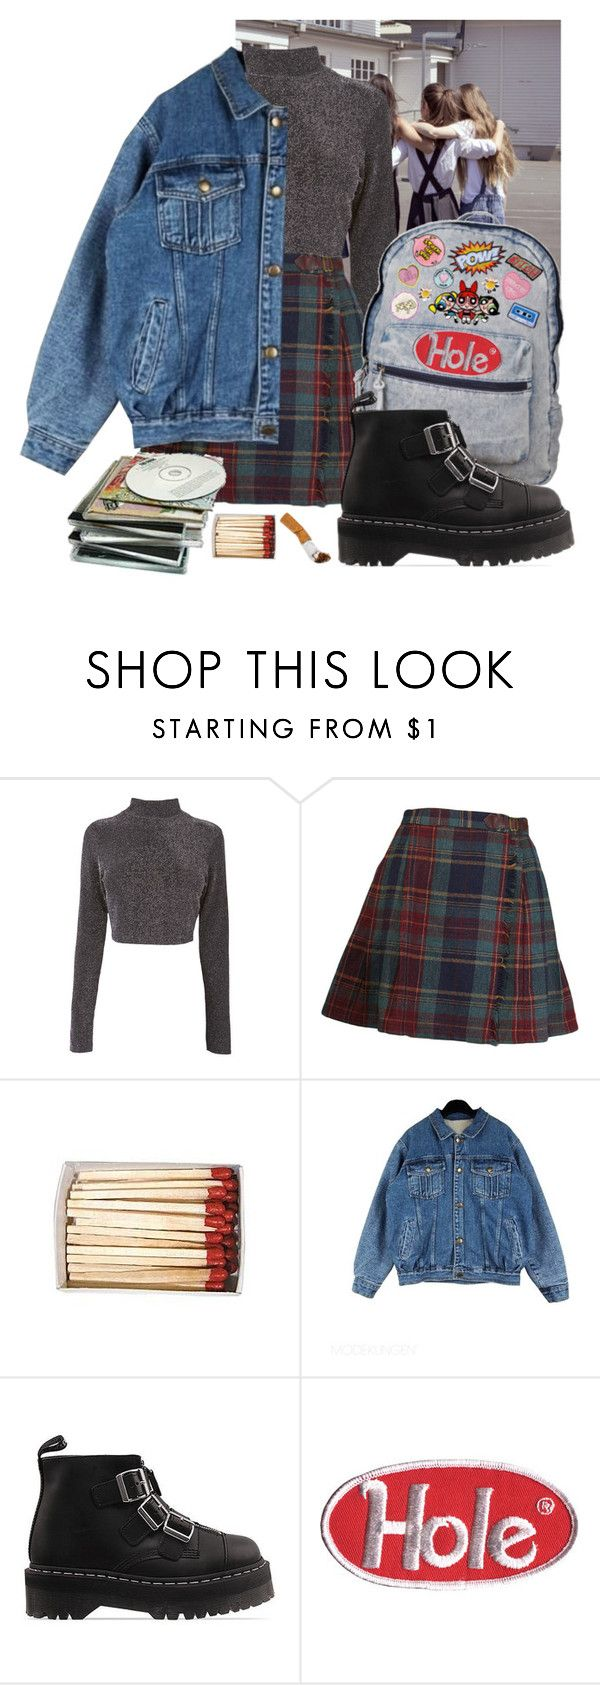 """90s schoolgirl//"" by vforvagina ❤ liked on Polyvore featuring Dr. Martens"